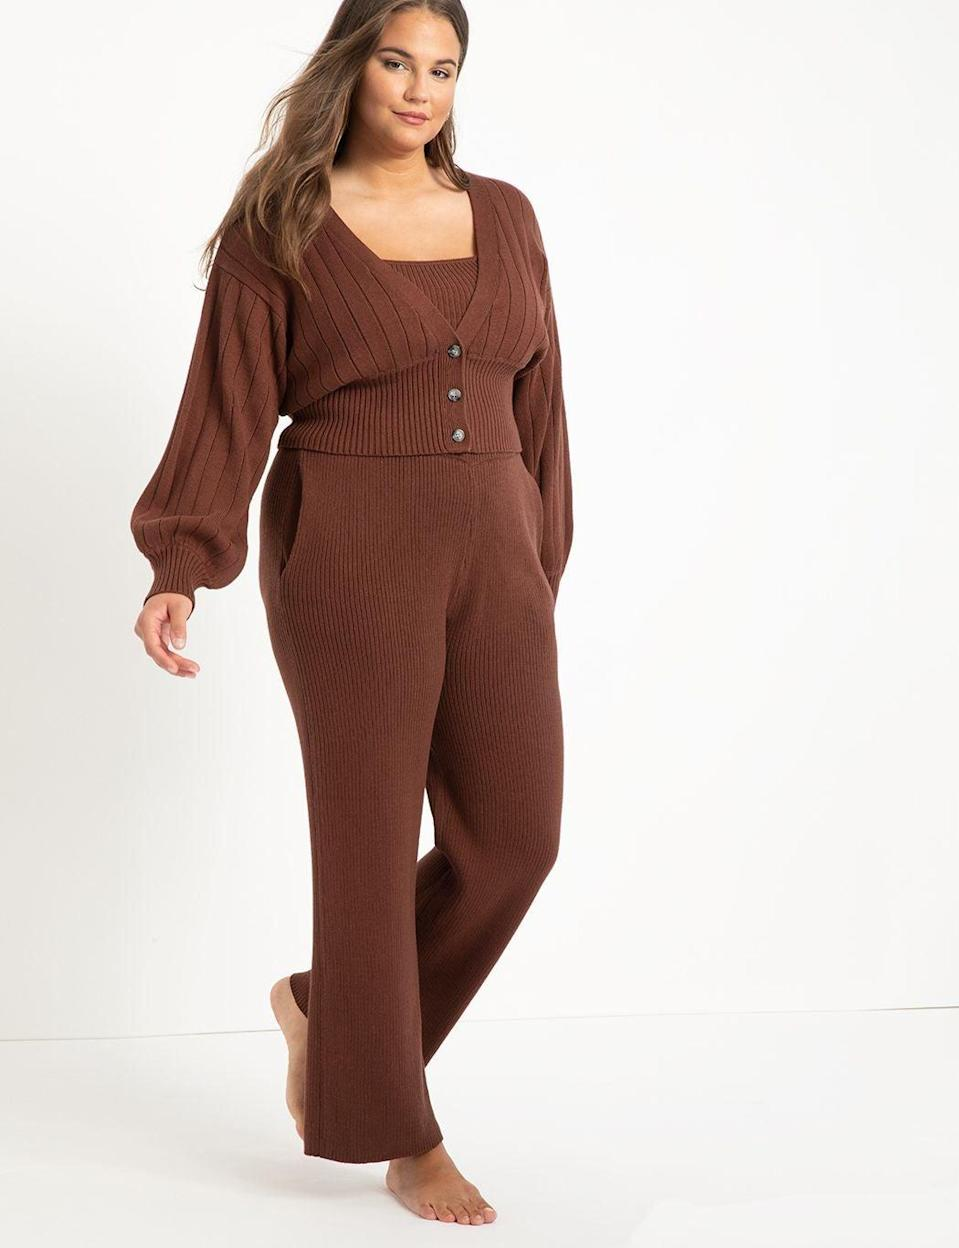 """<h2>Eloquii Wide Leg Knit Pants</h2><br>Want to look cute while getting just as much comfort as you would in your pajamas? We recommend a 100% cotton matching set, like this getup from Eloquii. The knit pants and the elastic pull-on waist are just the cherries on top of looking extra chic as you turn the airplane's aisle into your own personal runway. <br><br><em>Shop <strong><a href=""""https://www.eloquii.com/"""" rel=""""nofollow noopener"""" target=""""_blank"""" data-ylk=""""slk:Eloqui"""" class=""""link rapid-noclick-resp"""">Eloqui</a></strong></em><strong><a href=""""https://www.eloquii.com/"""" rel=""""nofollow noopener"""" target=""""_blank"""" data-ylk=""""slk:i"""" class=""""link rapid-noclick-resp""""><em>i</em></a></strong><br><br><strong>Eloquii</strong> Wide Leg Knit Pants, $, available at <a href=""""https://go.skimresources.com/?id=30283X879131&url=https%3A%2F%2Fwww.eloquii.com%2Fwide-leg-knit-pants%2F1175183.html%3Fdwvar_1175183_colorCode%3D21%26index%3D40%26item_list_id%3Dplp_category_page%26item_list_name%3DCategory%2520Page"""" rel=""""nofollow noopener"""" target=""""_blank"""" data-ylk=""""slk:Eloquii"""" class=""""link rapid-noclick-resp"""">Eloquii</a>"""